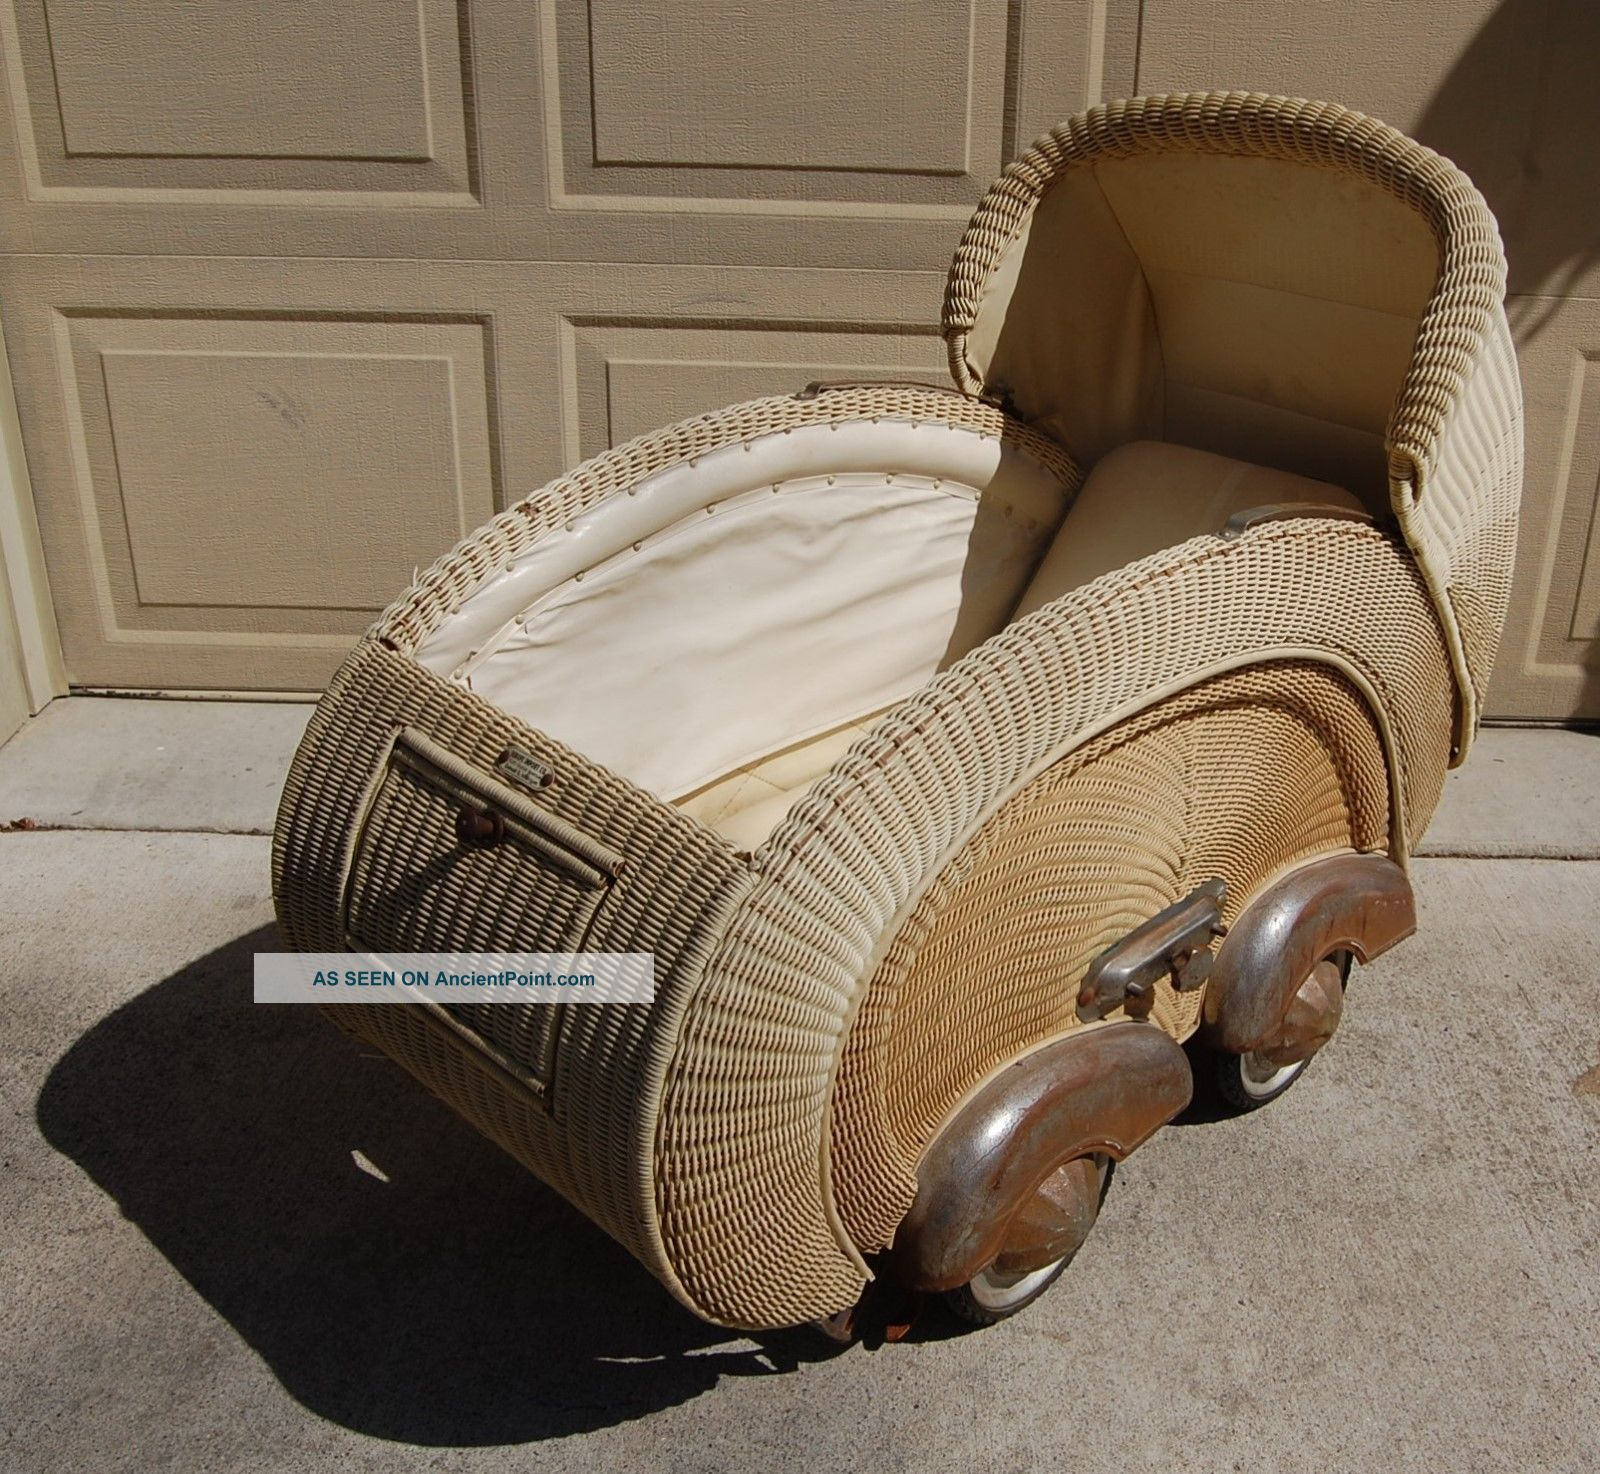 Vintage Cream Wicker Baby Stroller Buggy With Metal Fenders,  Spring Suspension Baby Carriages & Buggies photo